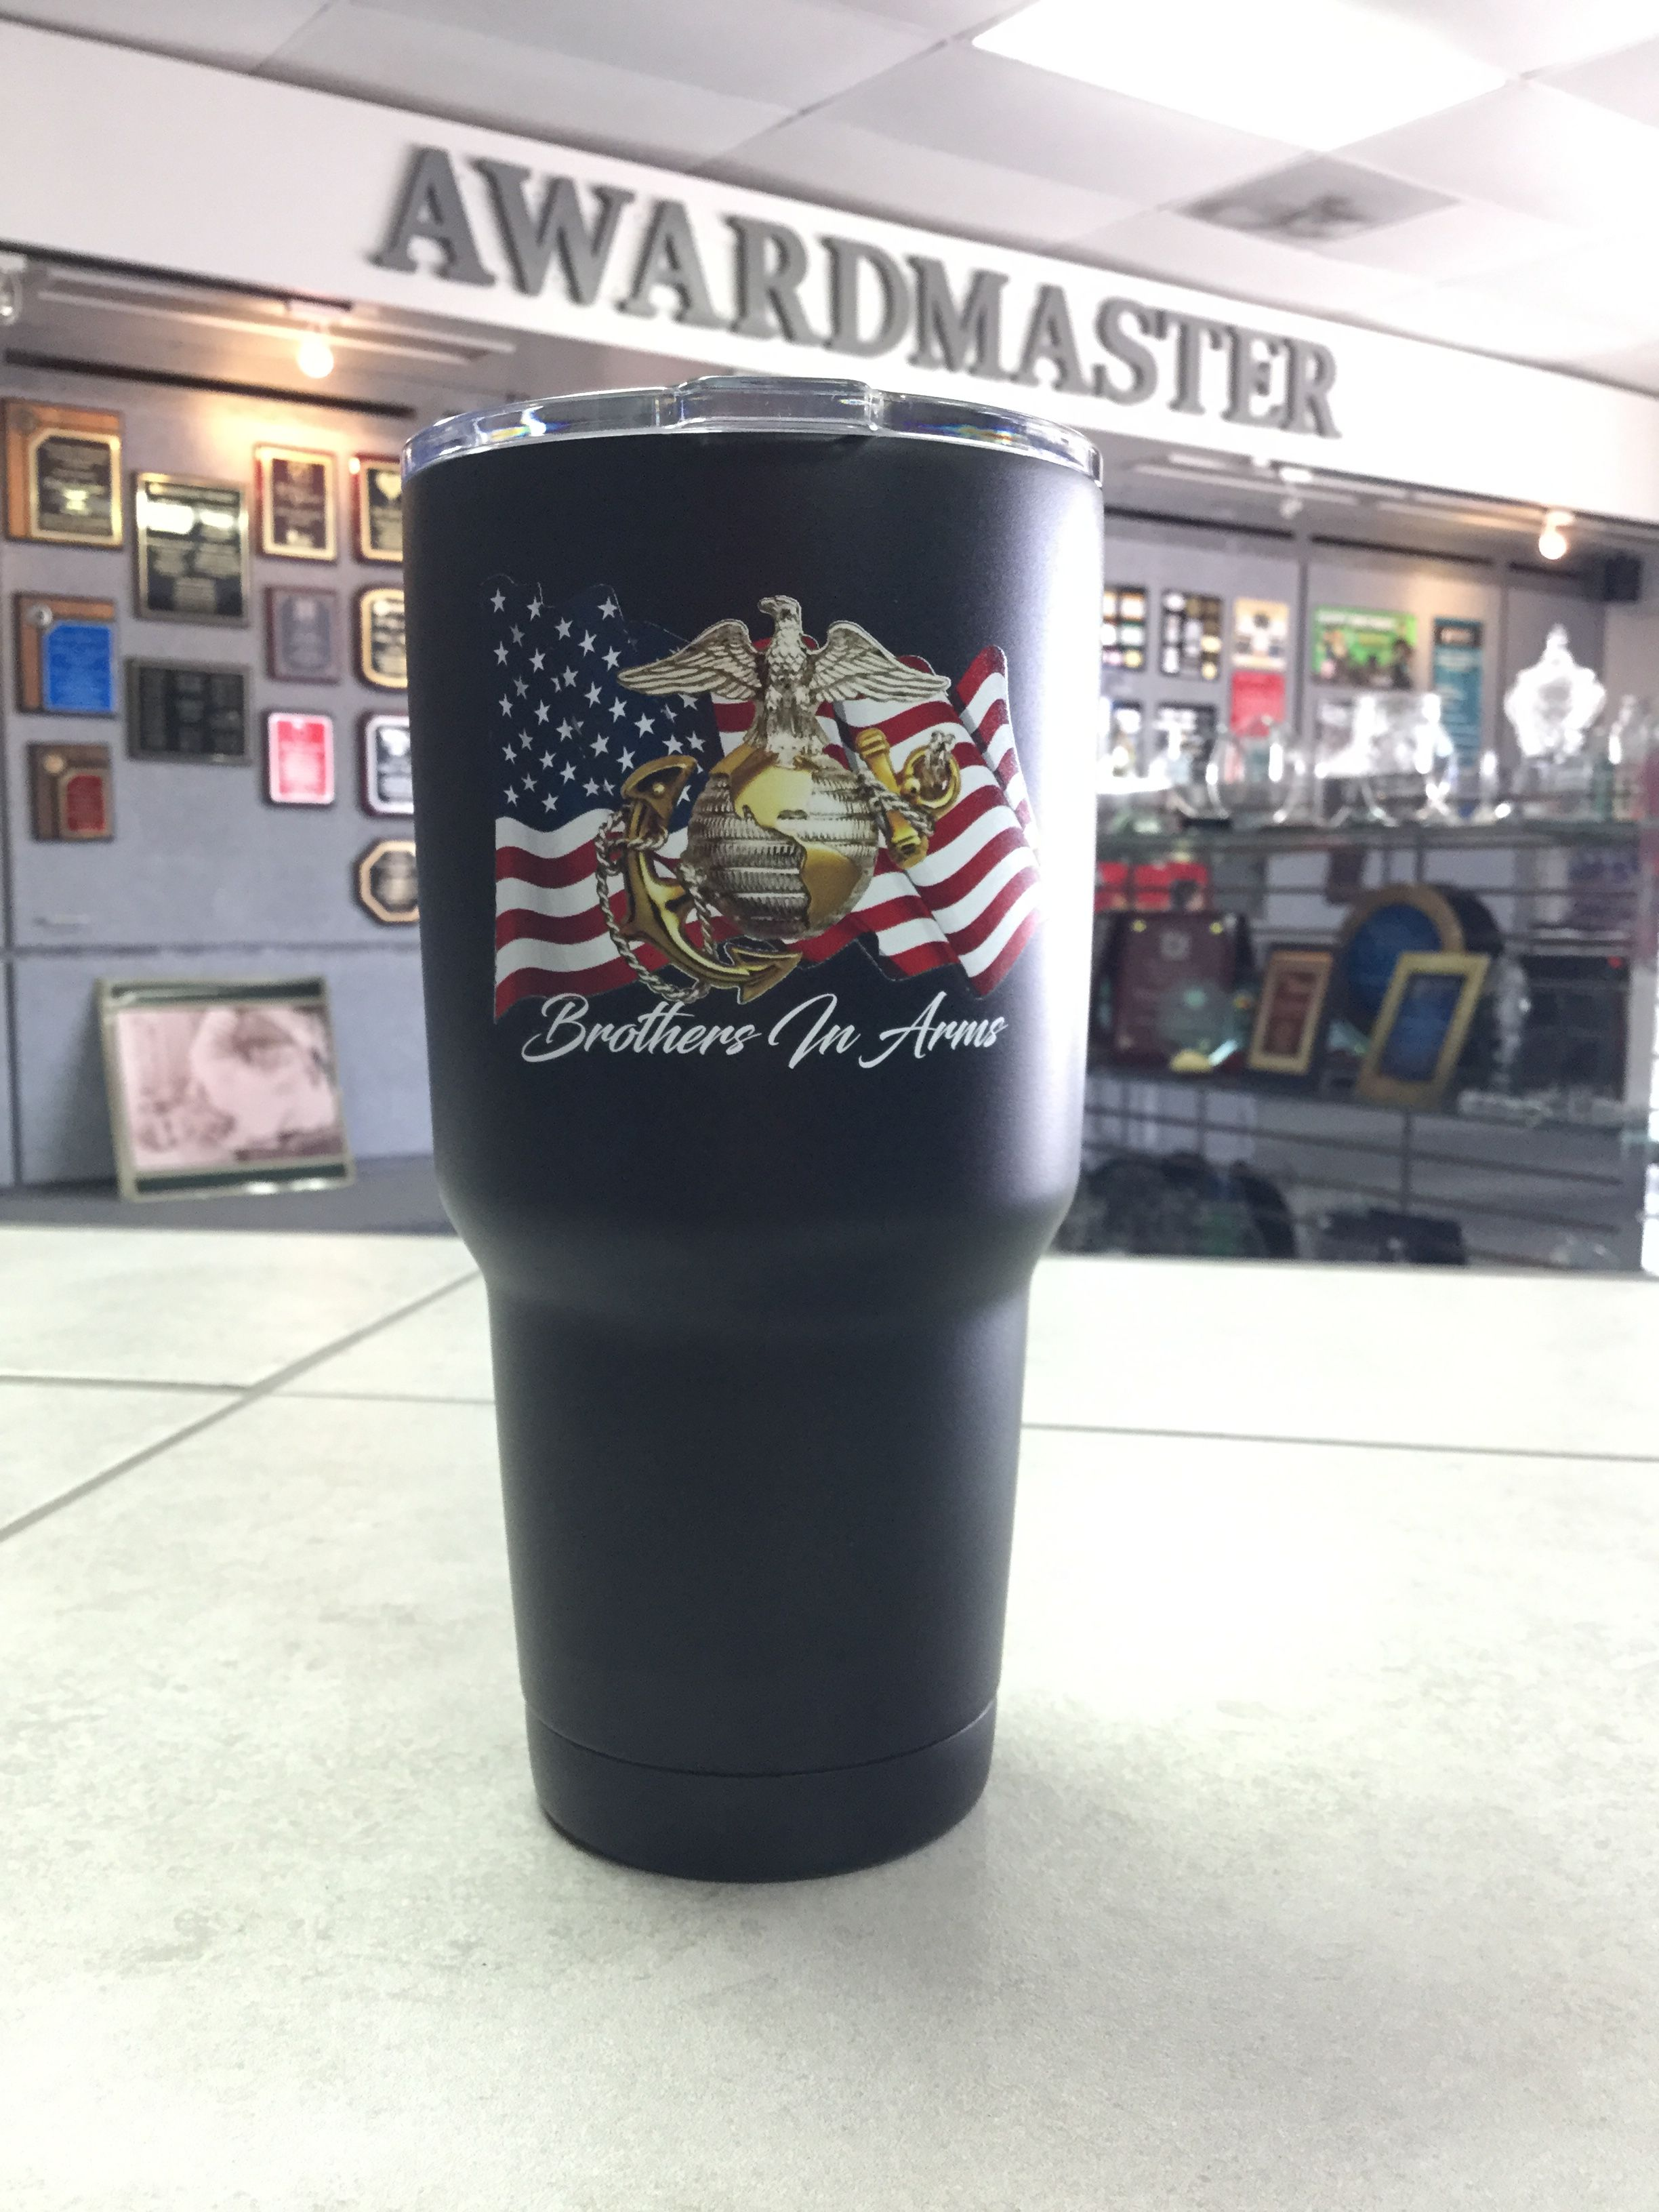 e70b5813566 Marine Corps Personalized Tumblers for a gift! #tumbler #printing #gifts # marines #military #veterans #american